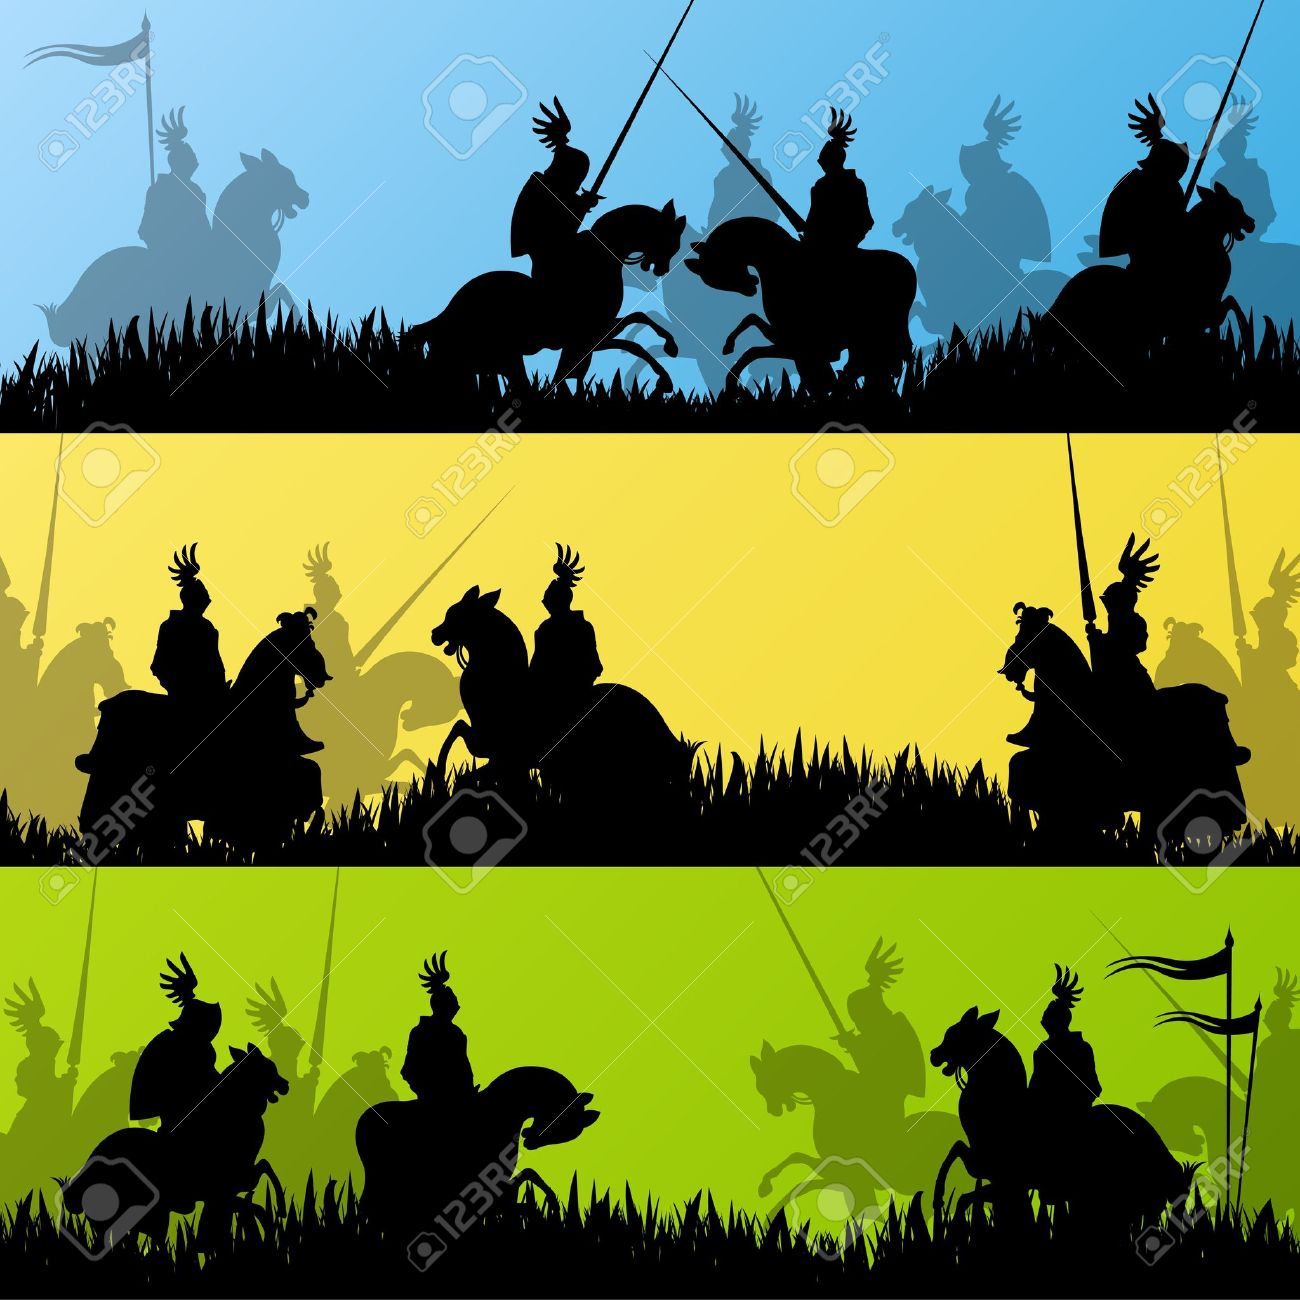 Medieval knight horseman silhouettes riding in battle field warfare illustration background Stock Vector - 16932620